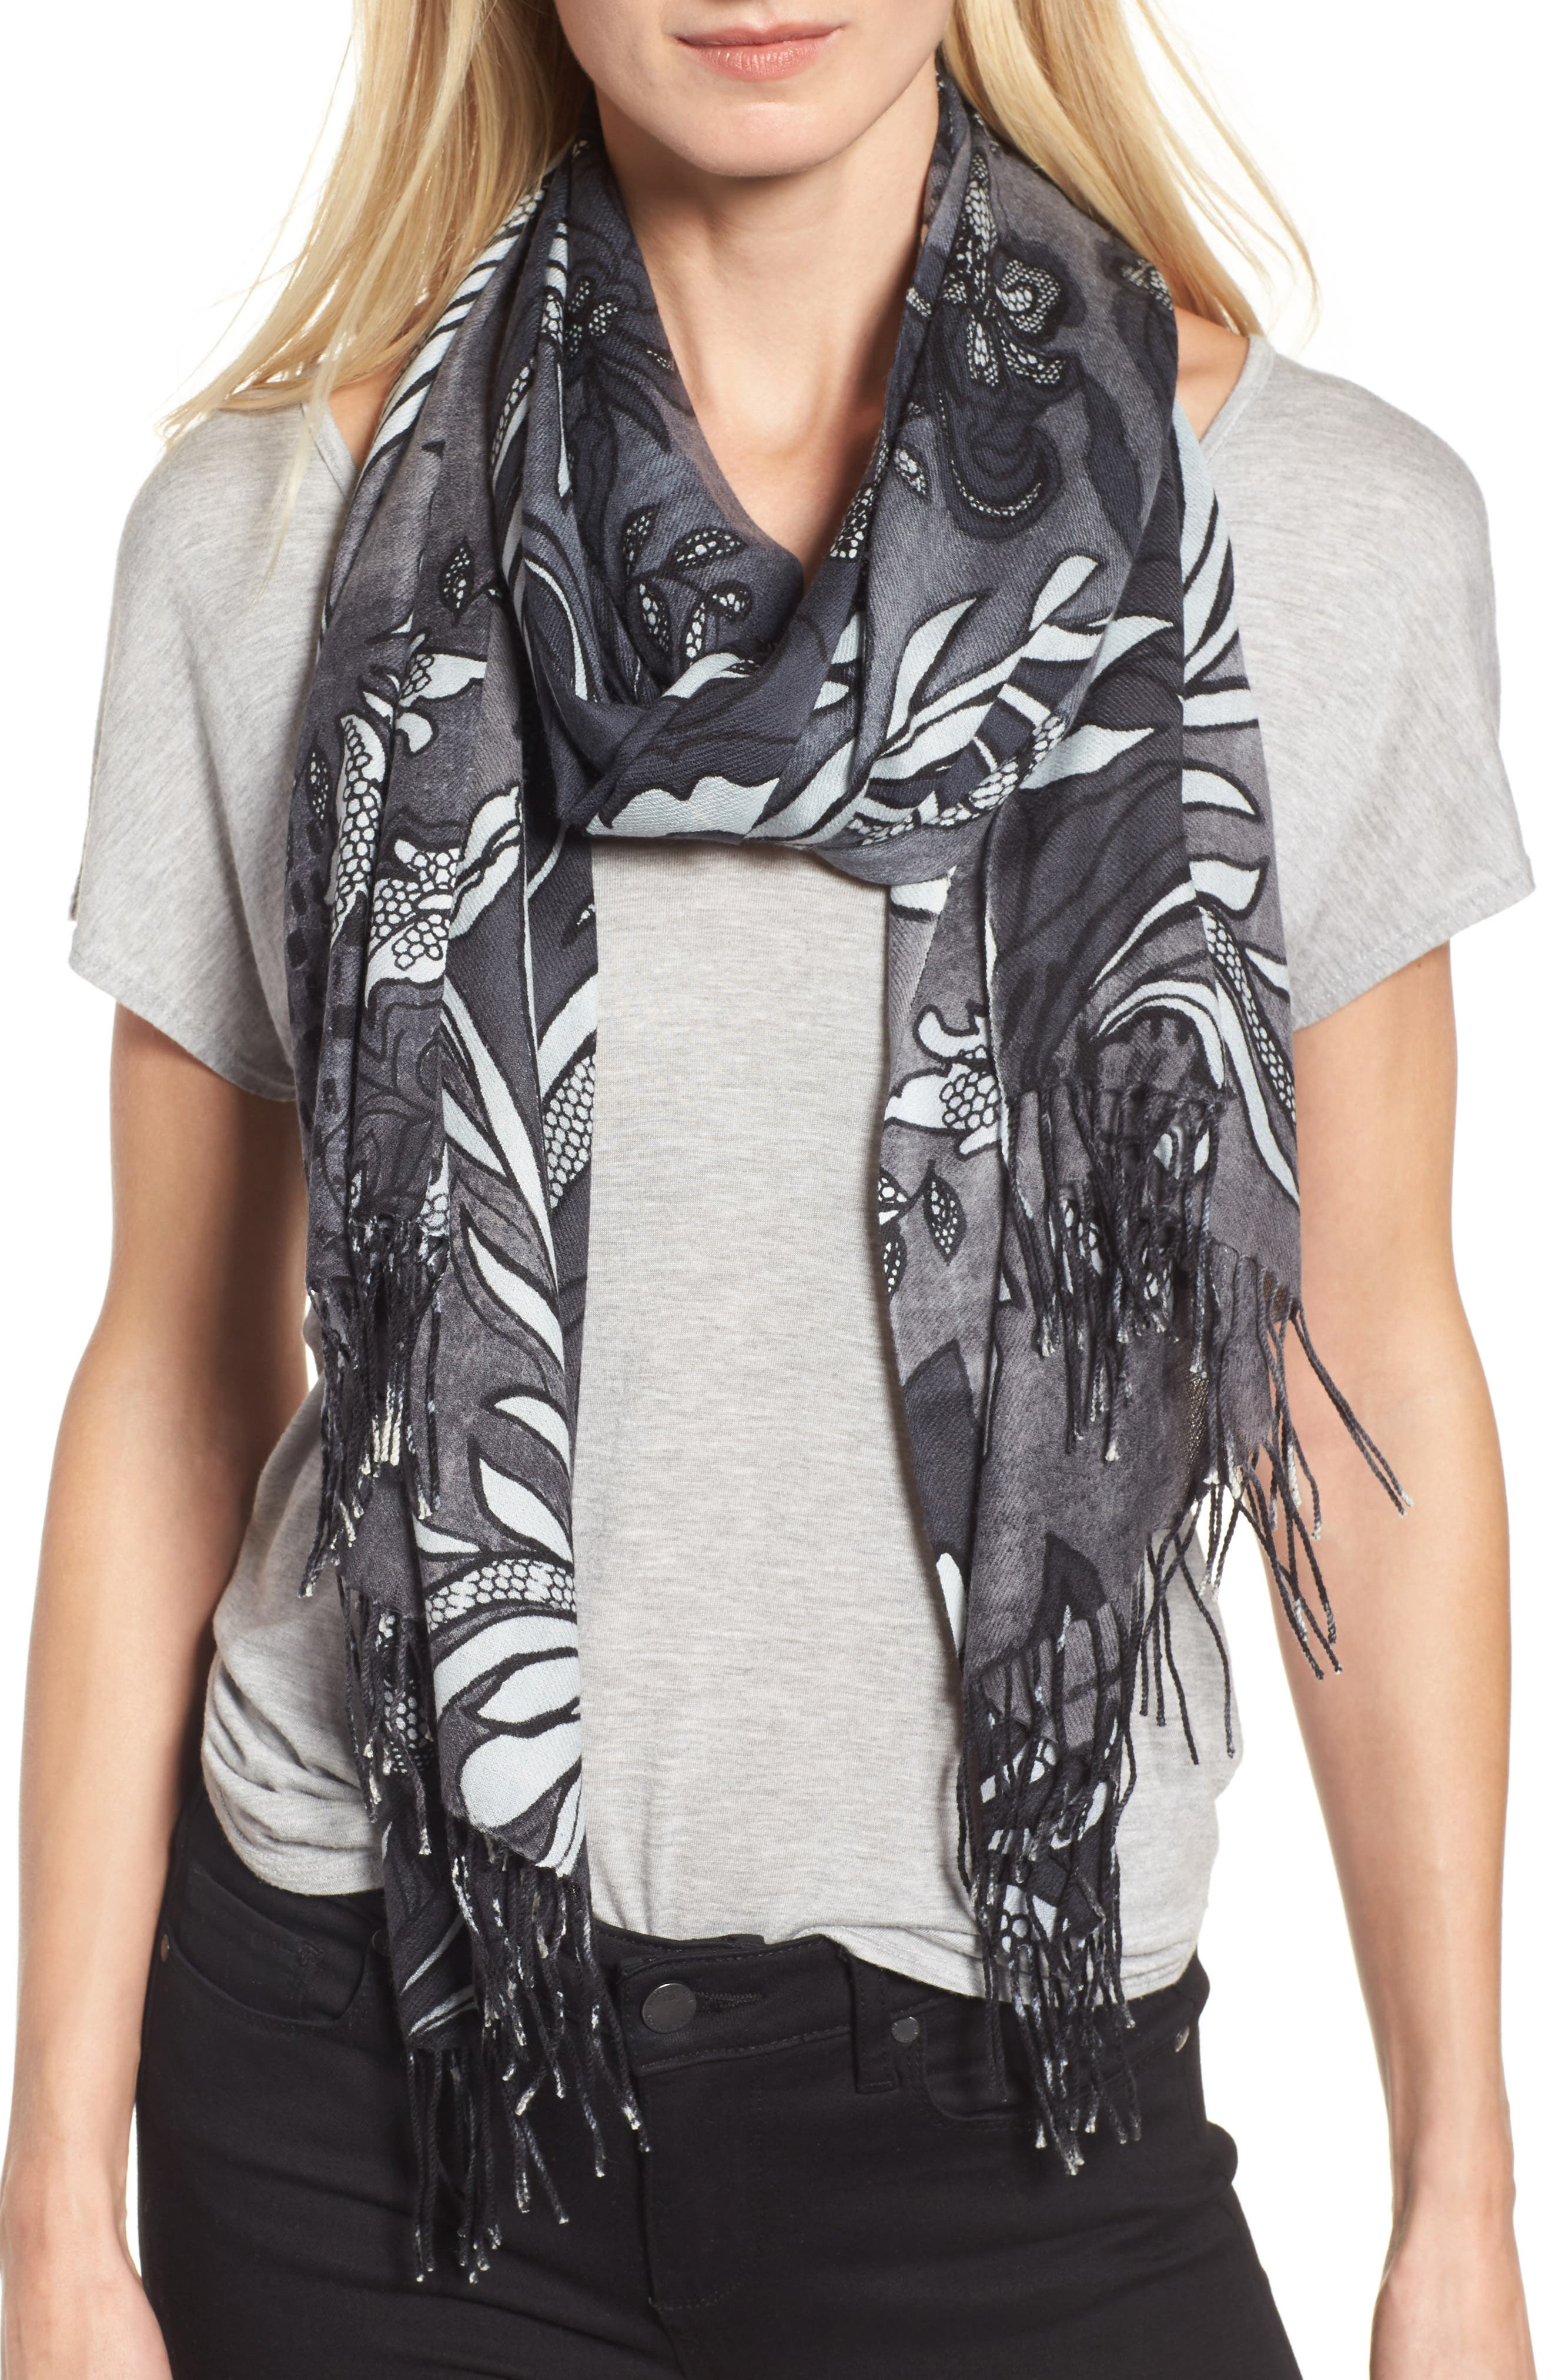 Alternate Image 1 Selected - Nordstrom Viennese Floral Tissue Wool & Cashmere Scarf